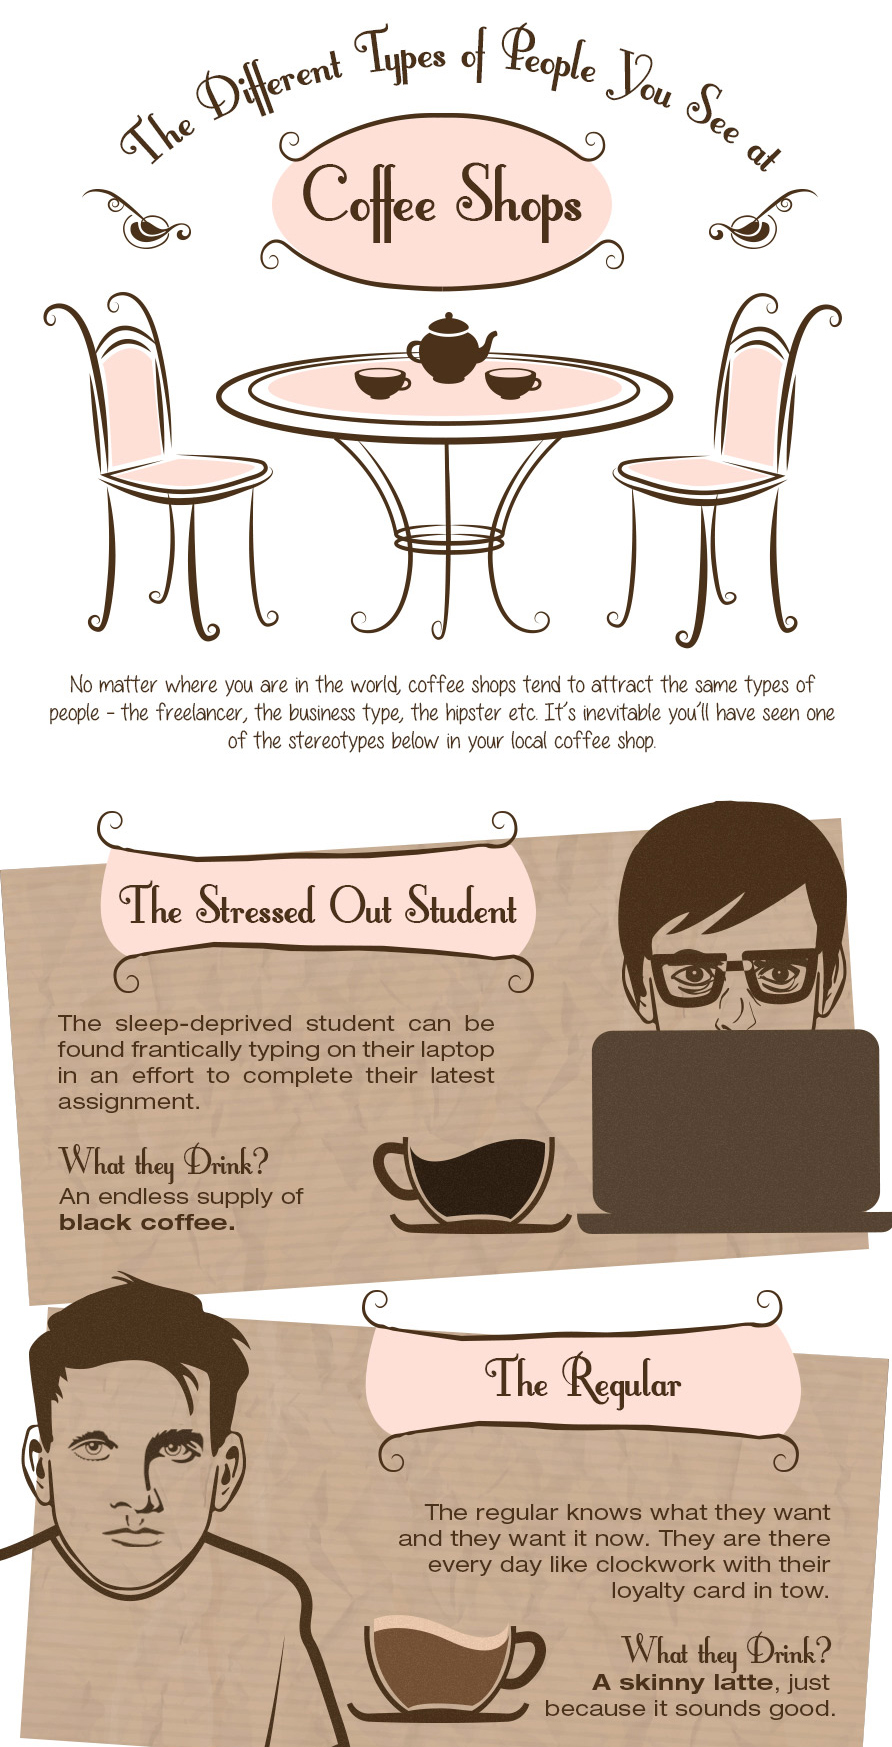 espresso works coffee shop infographic